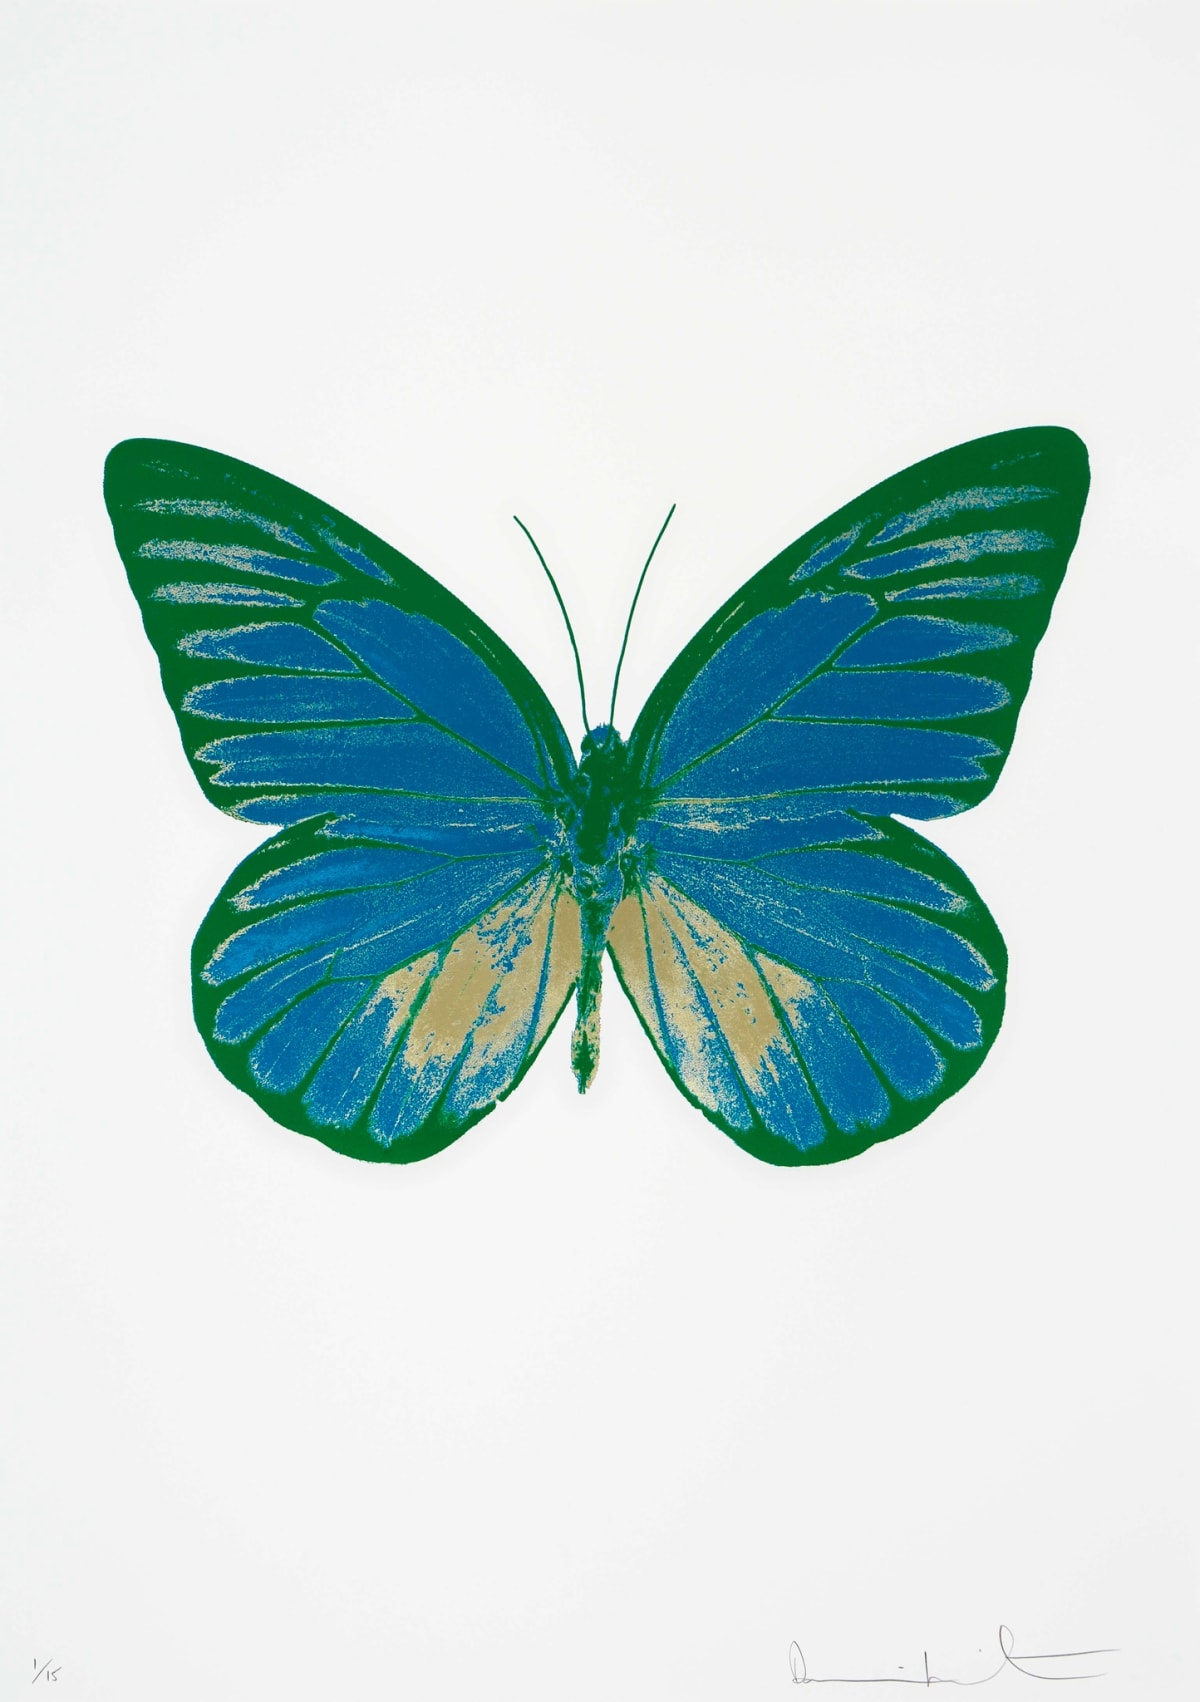 Damien Hirst The Souls I - Turquoise/Cool Gold/Emerald Green, 2010 3 colour foil block on 300gsm Arches 88 archival paper. Signed and numbered. Published by Paul Stolper and Other Criteria 72 x 51cm OC7770 / 659-33 Edition of 15